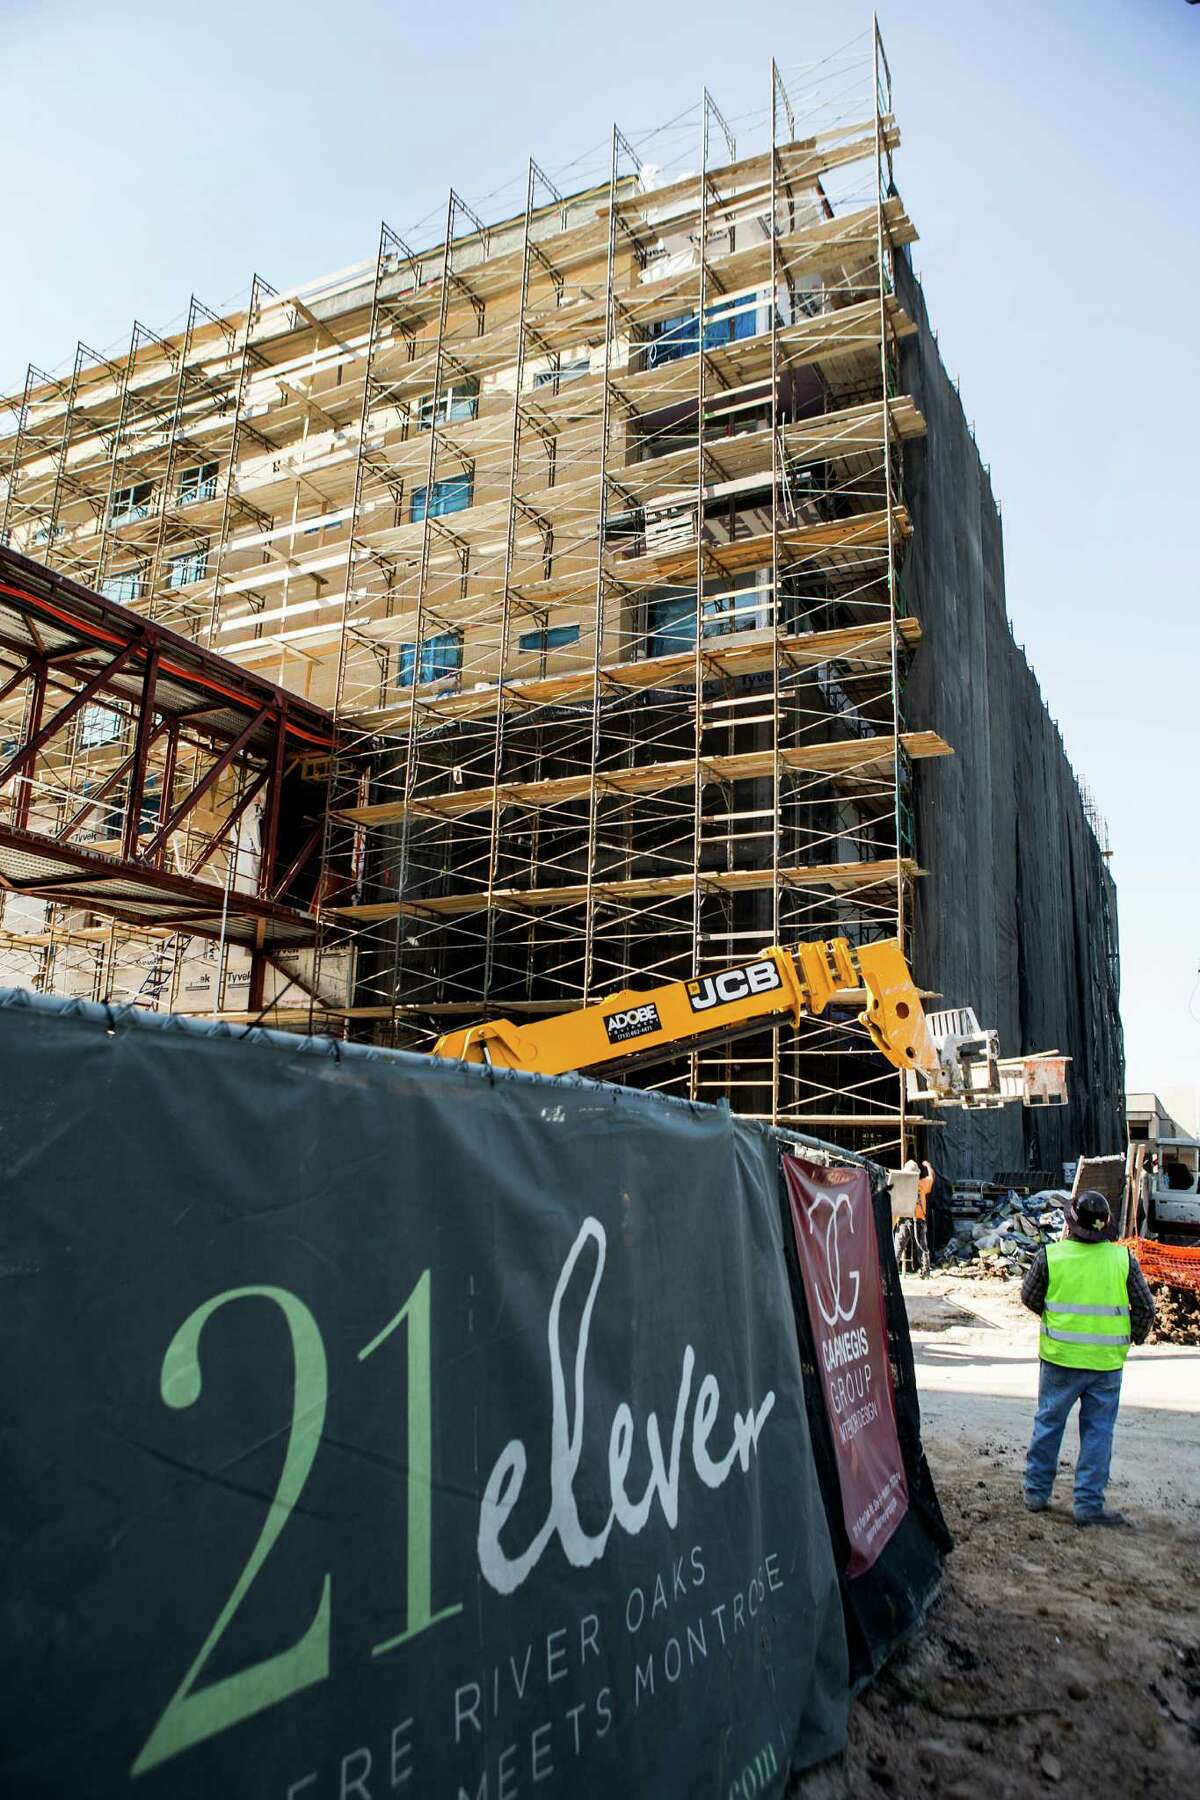 An Oct. 30, 2014 construction photo show the progress of 21eleven, a 215-unit apartment complex was developed by Hines at 2111 Westheimer. It is now named Pearl 21 Eleven.